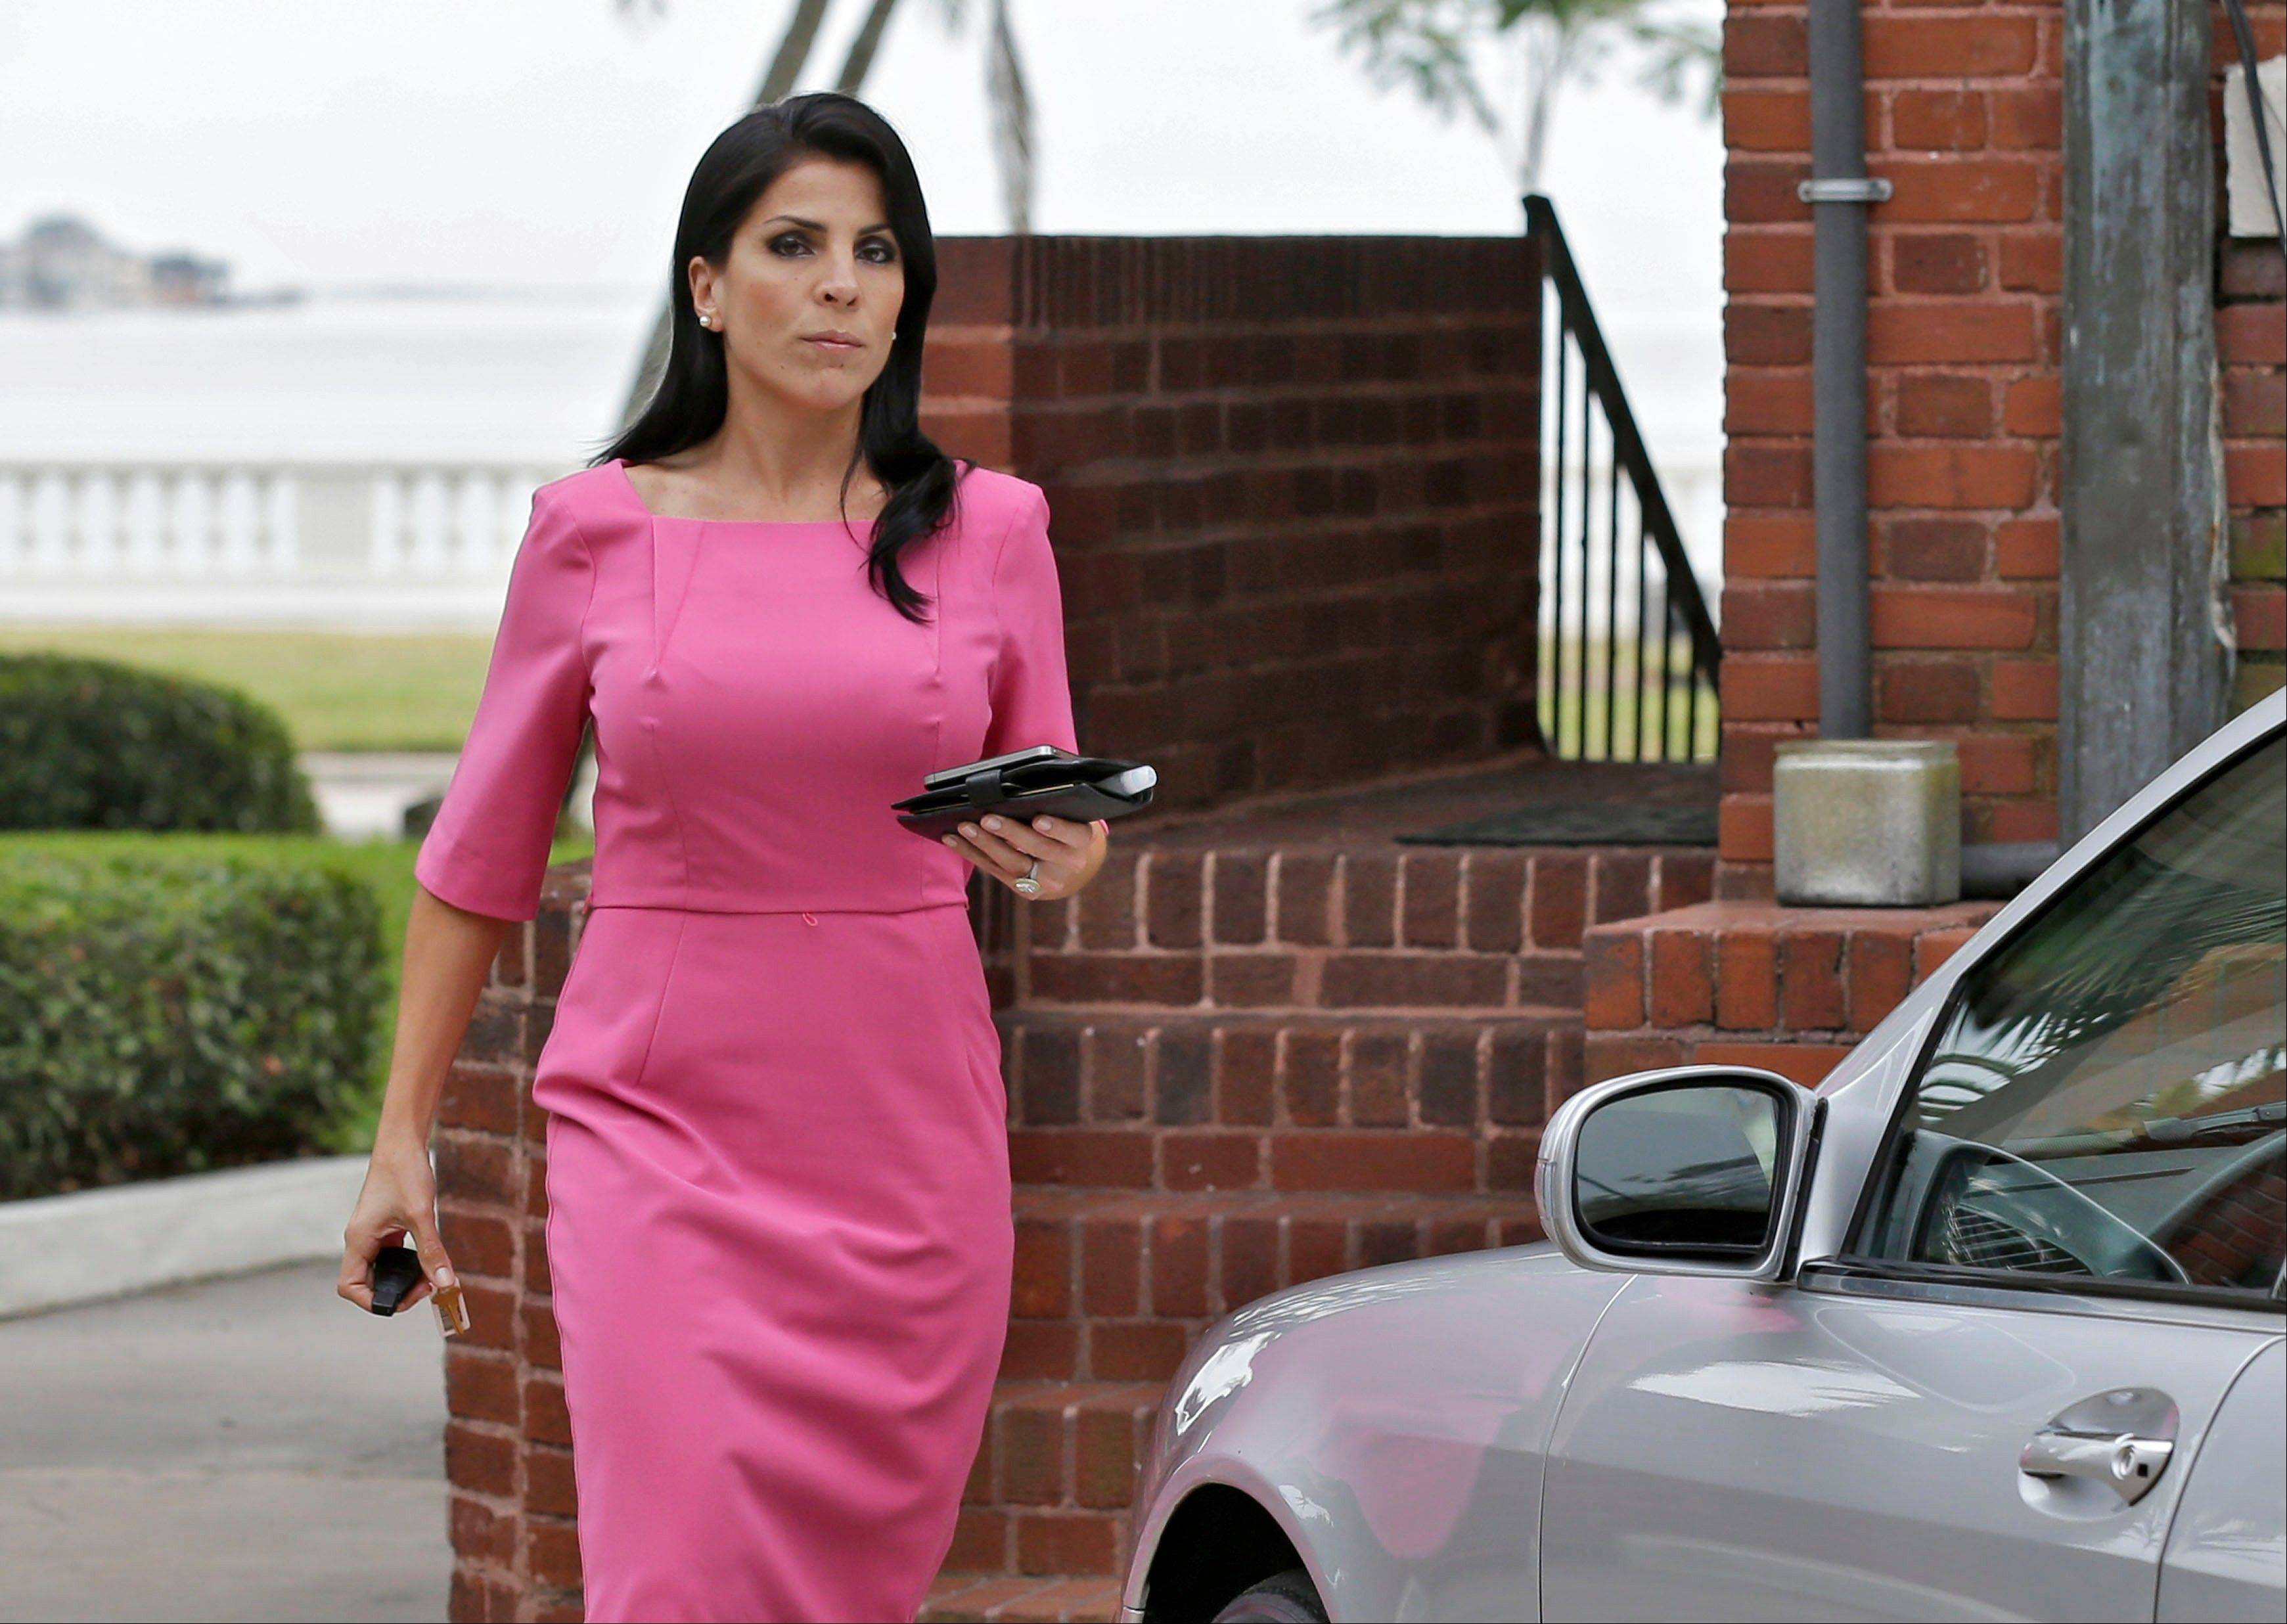 Jill Kelley leaves her home Tuesday, Nov 13, 2012 in Tampa, Fla. Kelley is identified as the woman who allegedly received harassing emails from Gen. David Petraeus' paramour, Paula Broadwell. She serves as an unpaid social liaison to MacDill Air Force Base in Tampa, where the military's Central Command and Special Operations Command are located.